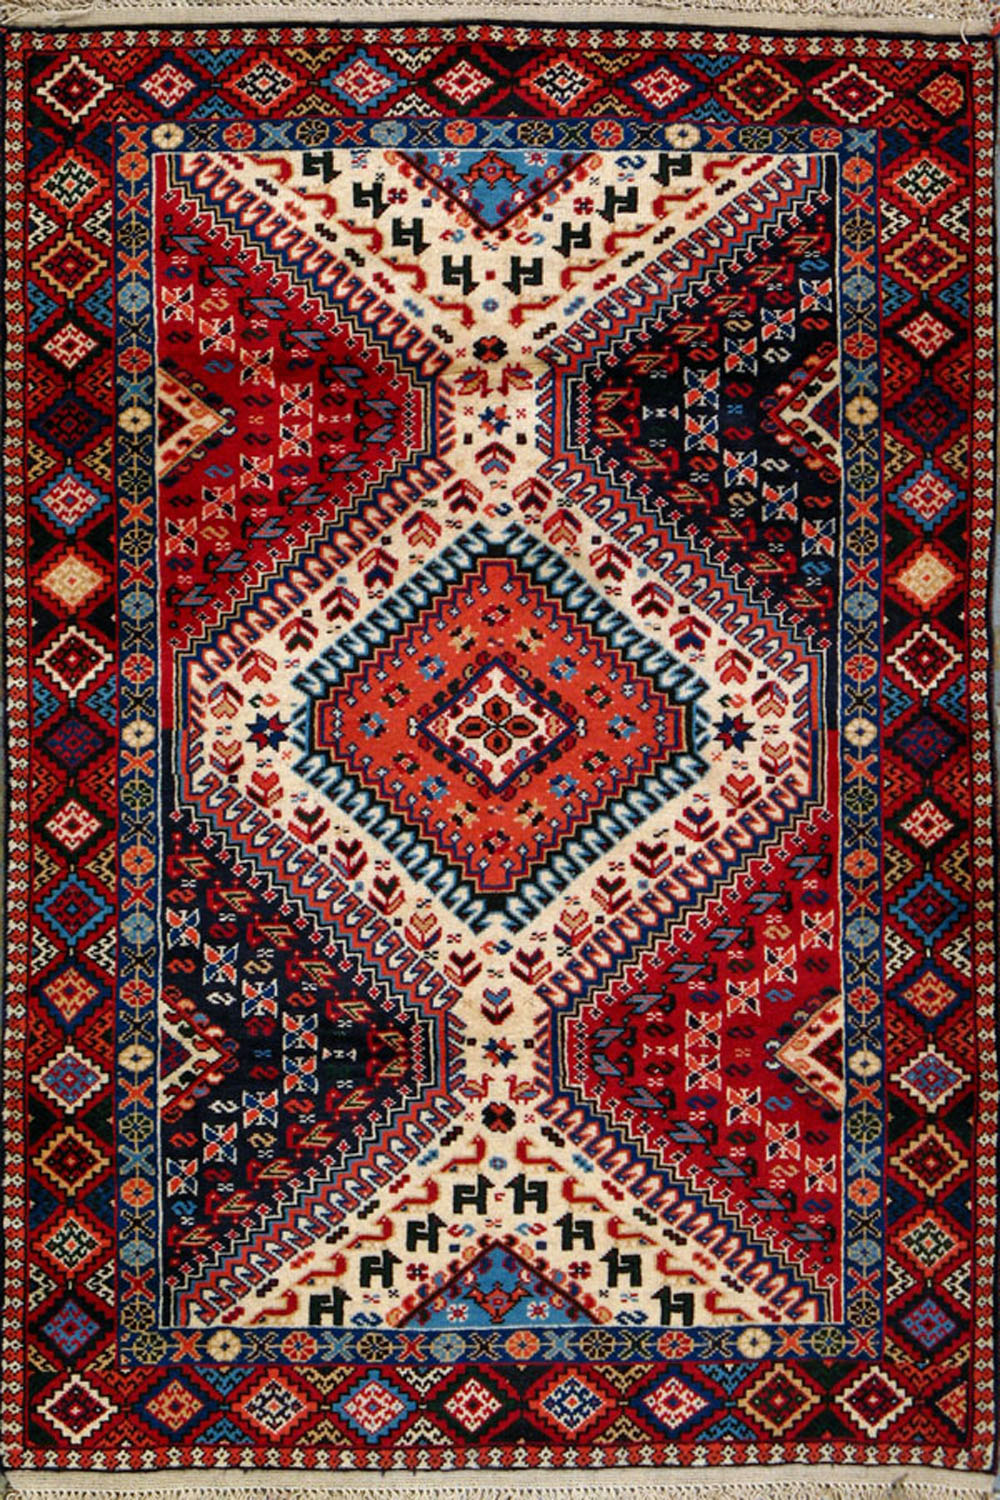 iranian rugs authentic persian oriental rugs handmade oriental rugs antique, silk rugs ZPCOWTG